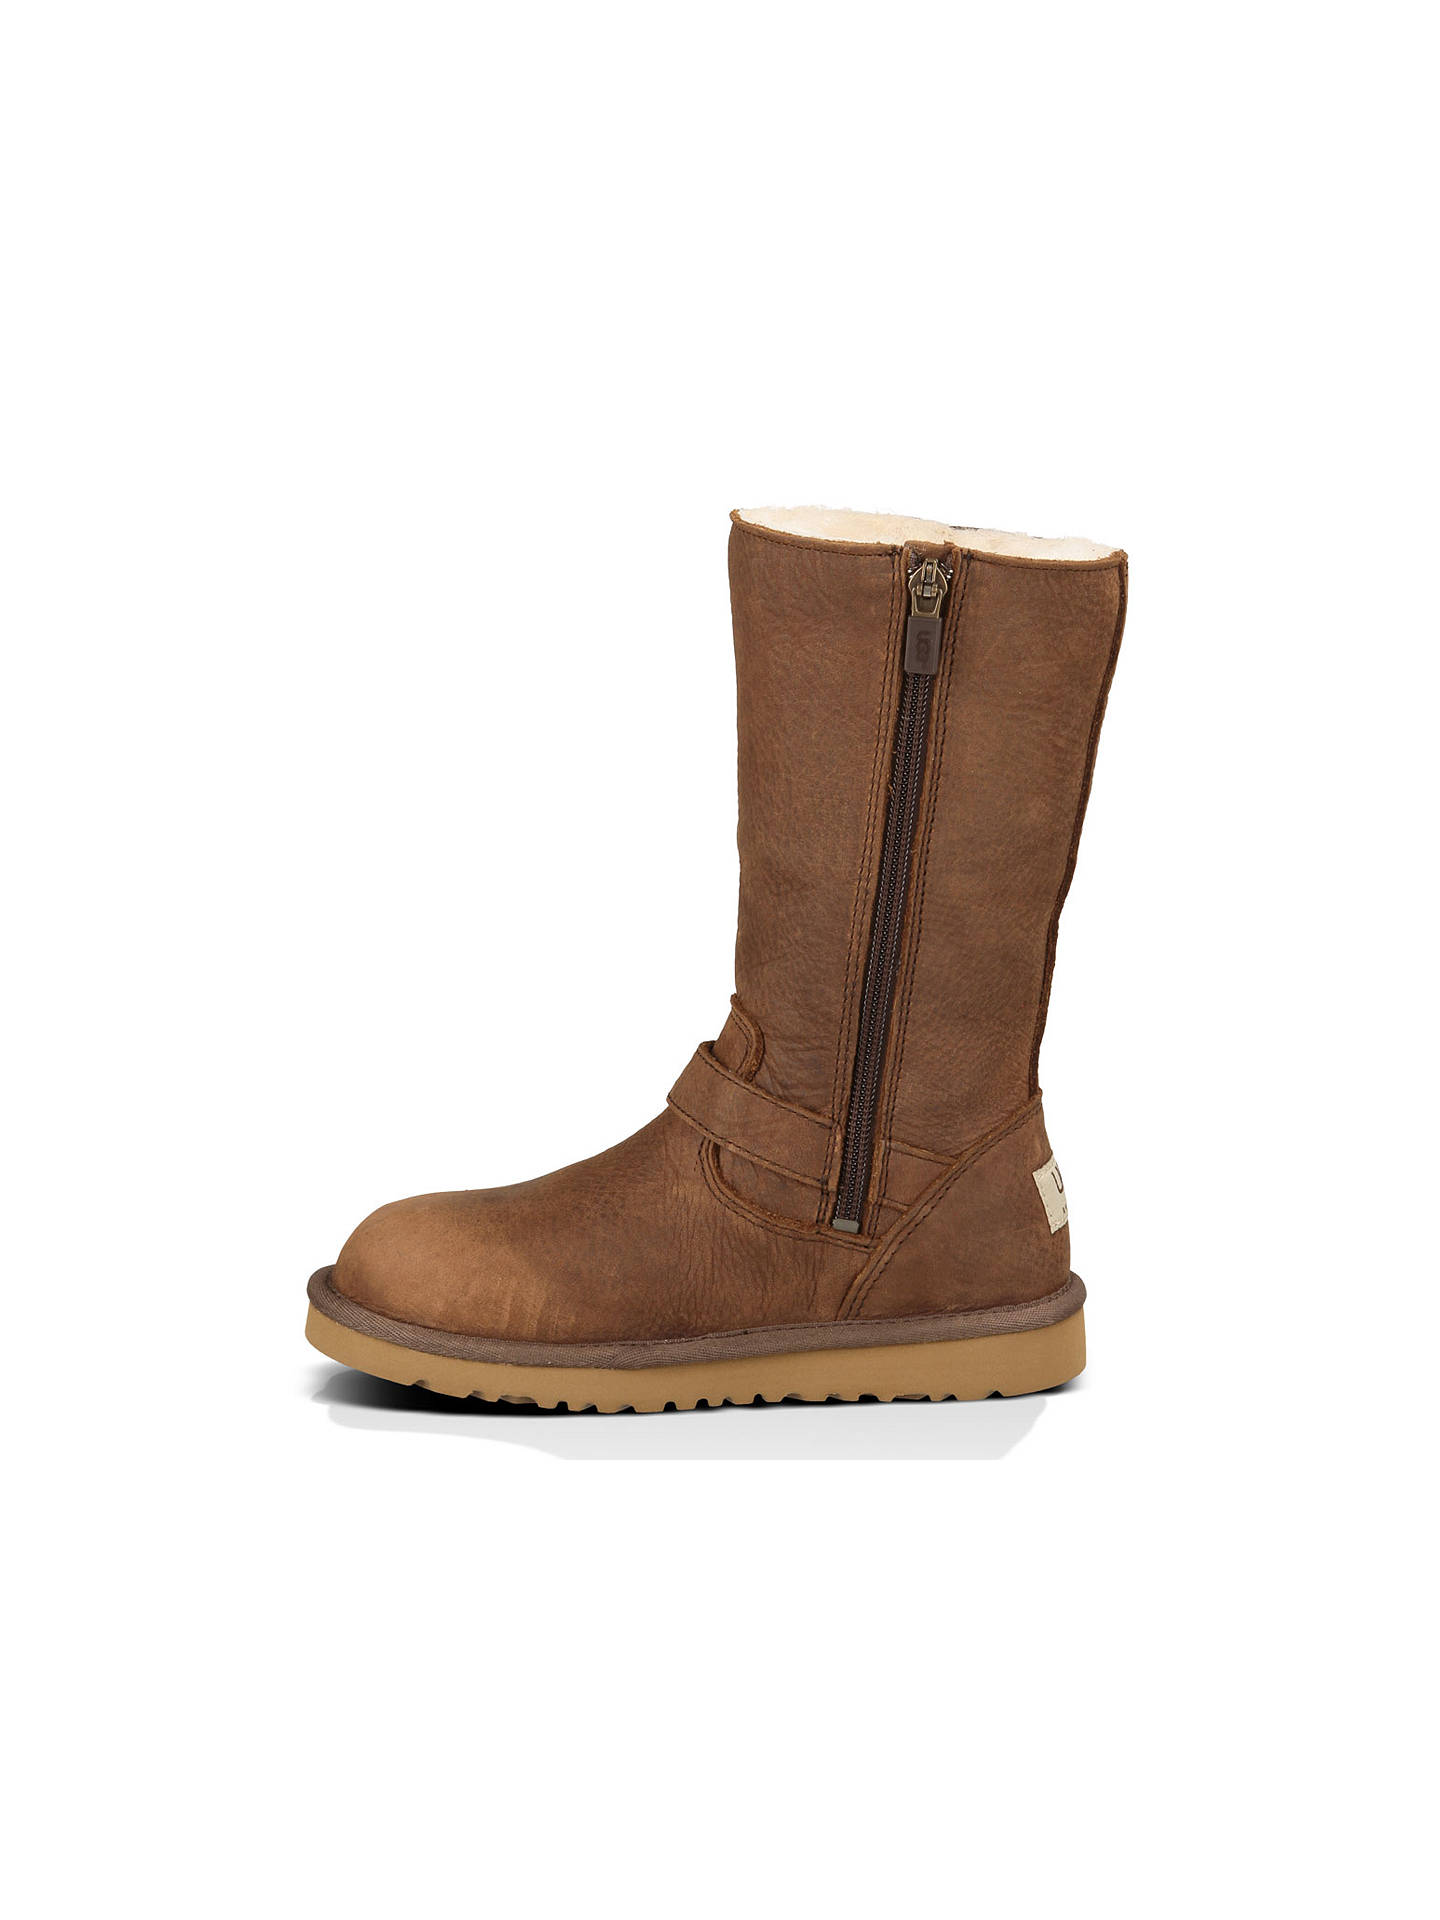 eaba5c1ac39 UGG Children's Kensington 1969 Boots at John Lewis & Partners